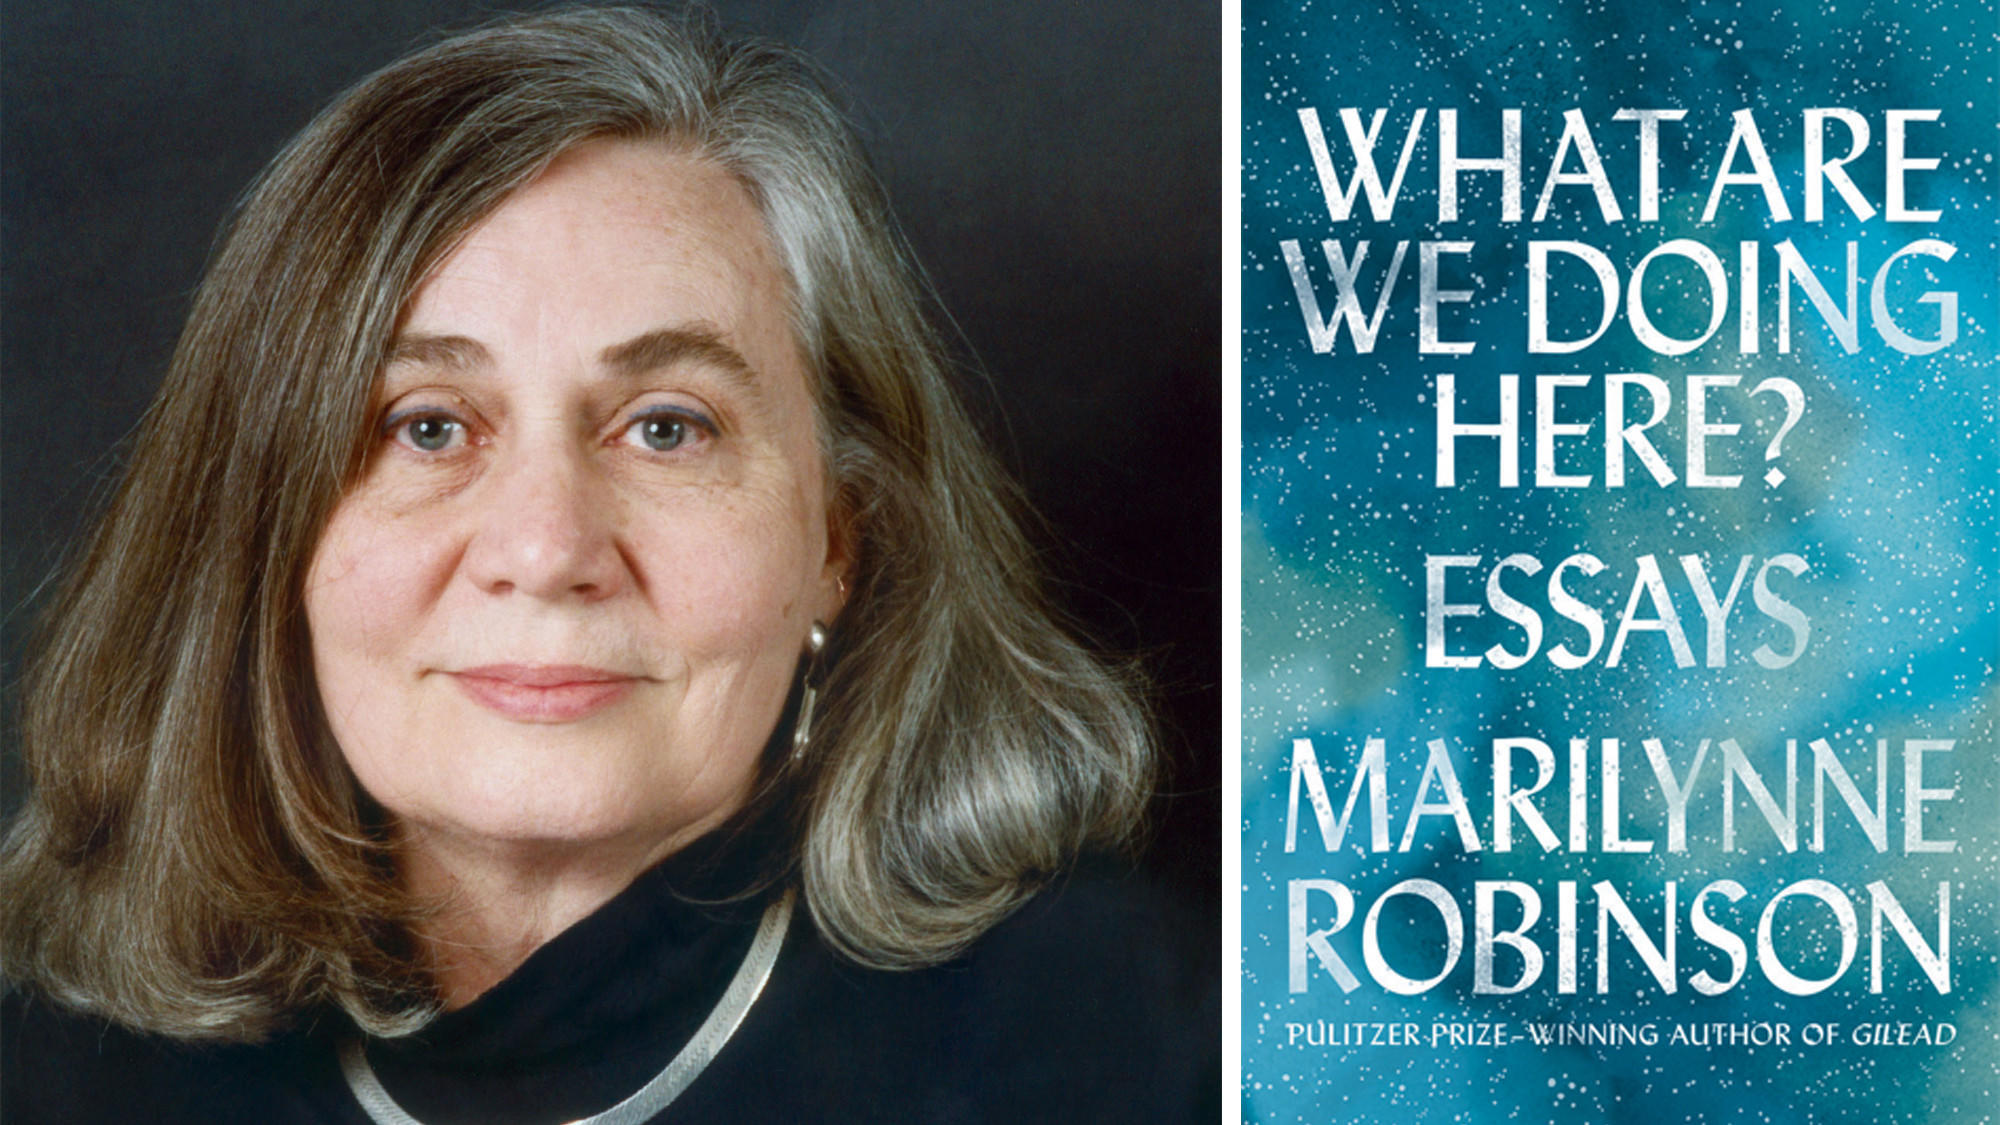 marilynne robinson essays A novelist, teacher, and essayist, marilynne robinson, this year's presidential lecturer, is one of the most remarkable and distinctive voices in contemporary american literature in her novels, all of which have won major literary awards, robinson illuminates the sacred qualities of ordinary.